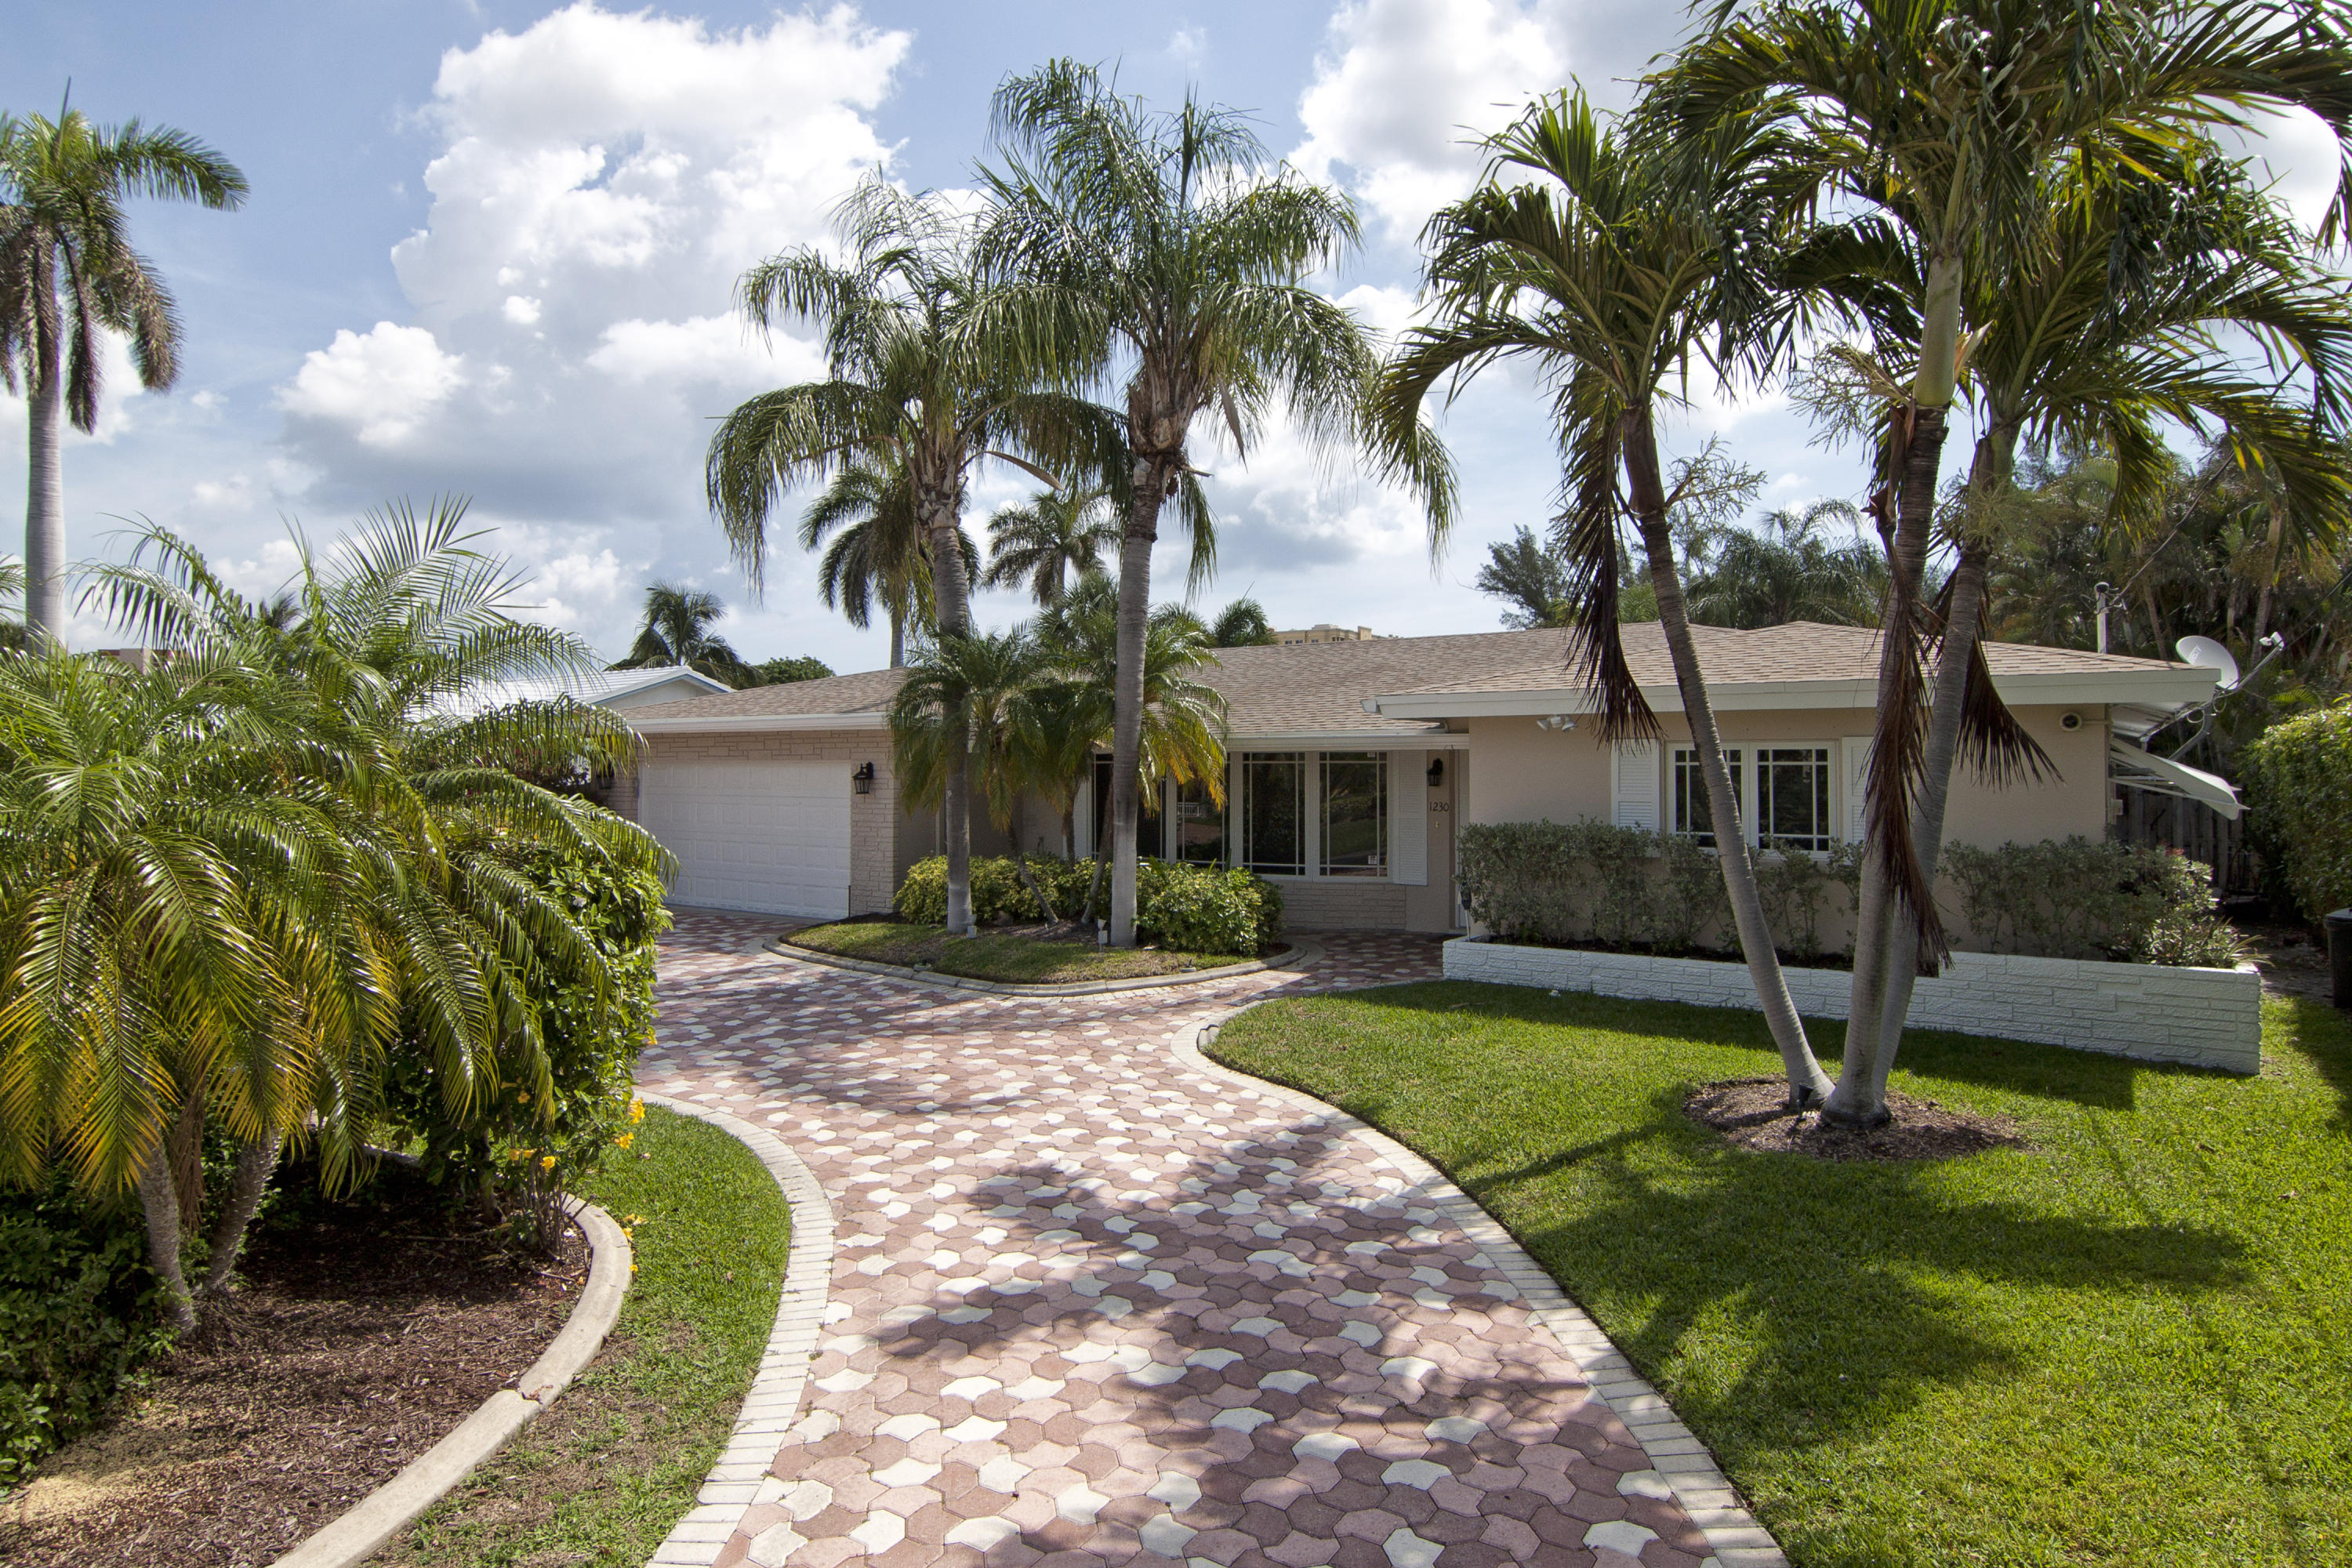 COUNTRY CLUB ISLES REAL ESTATE